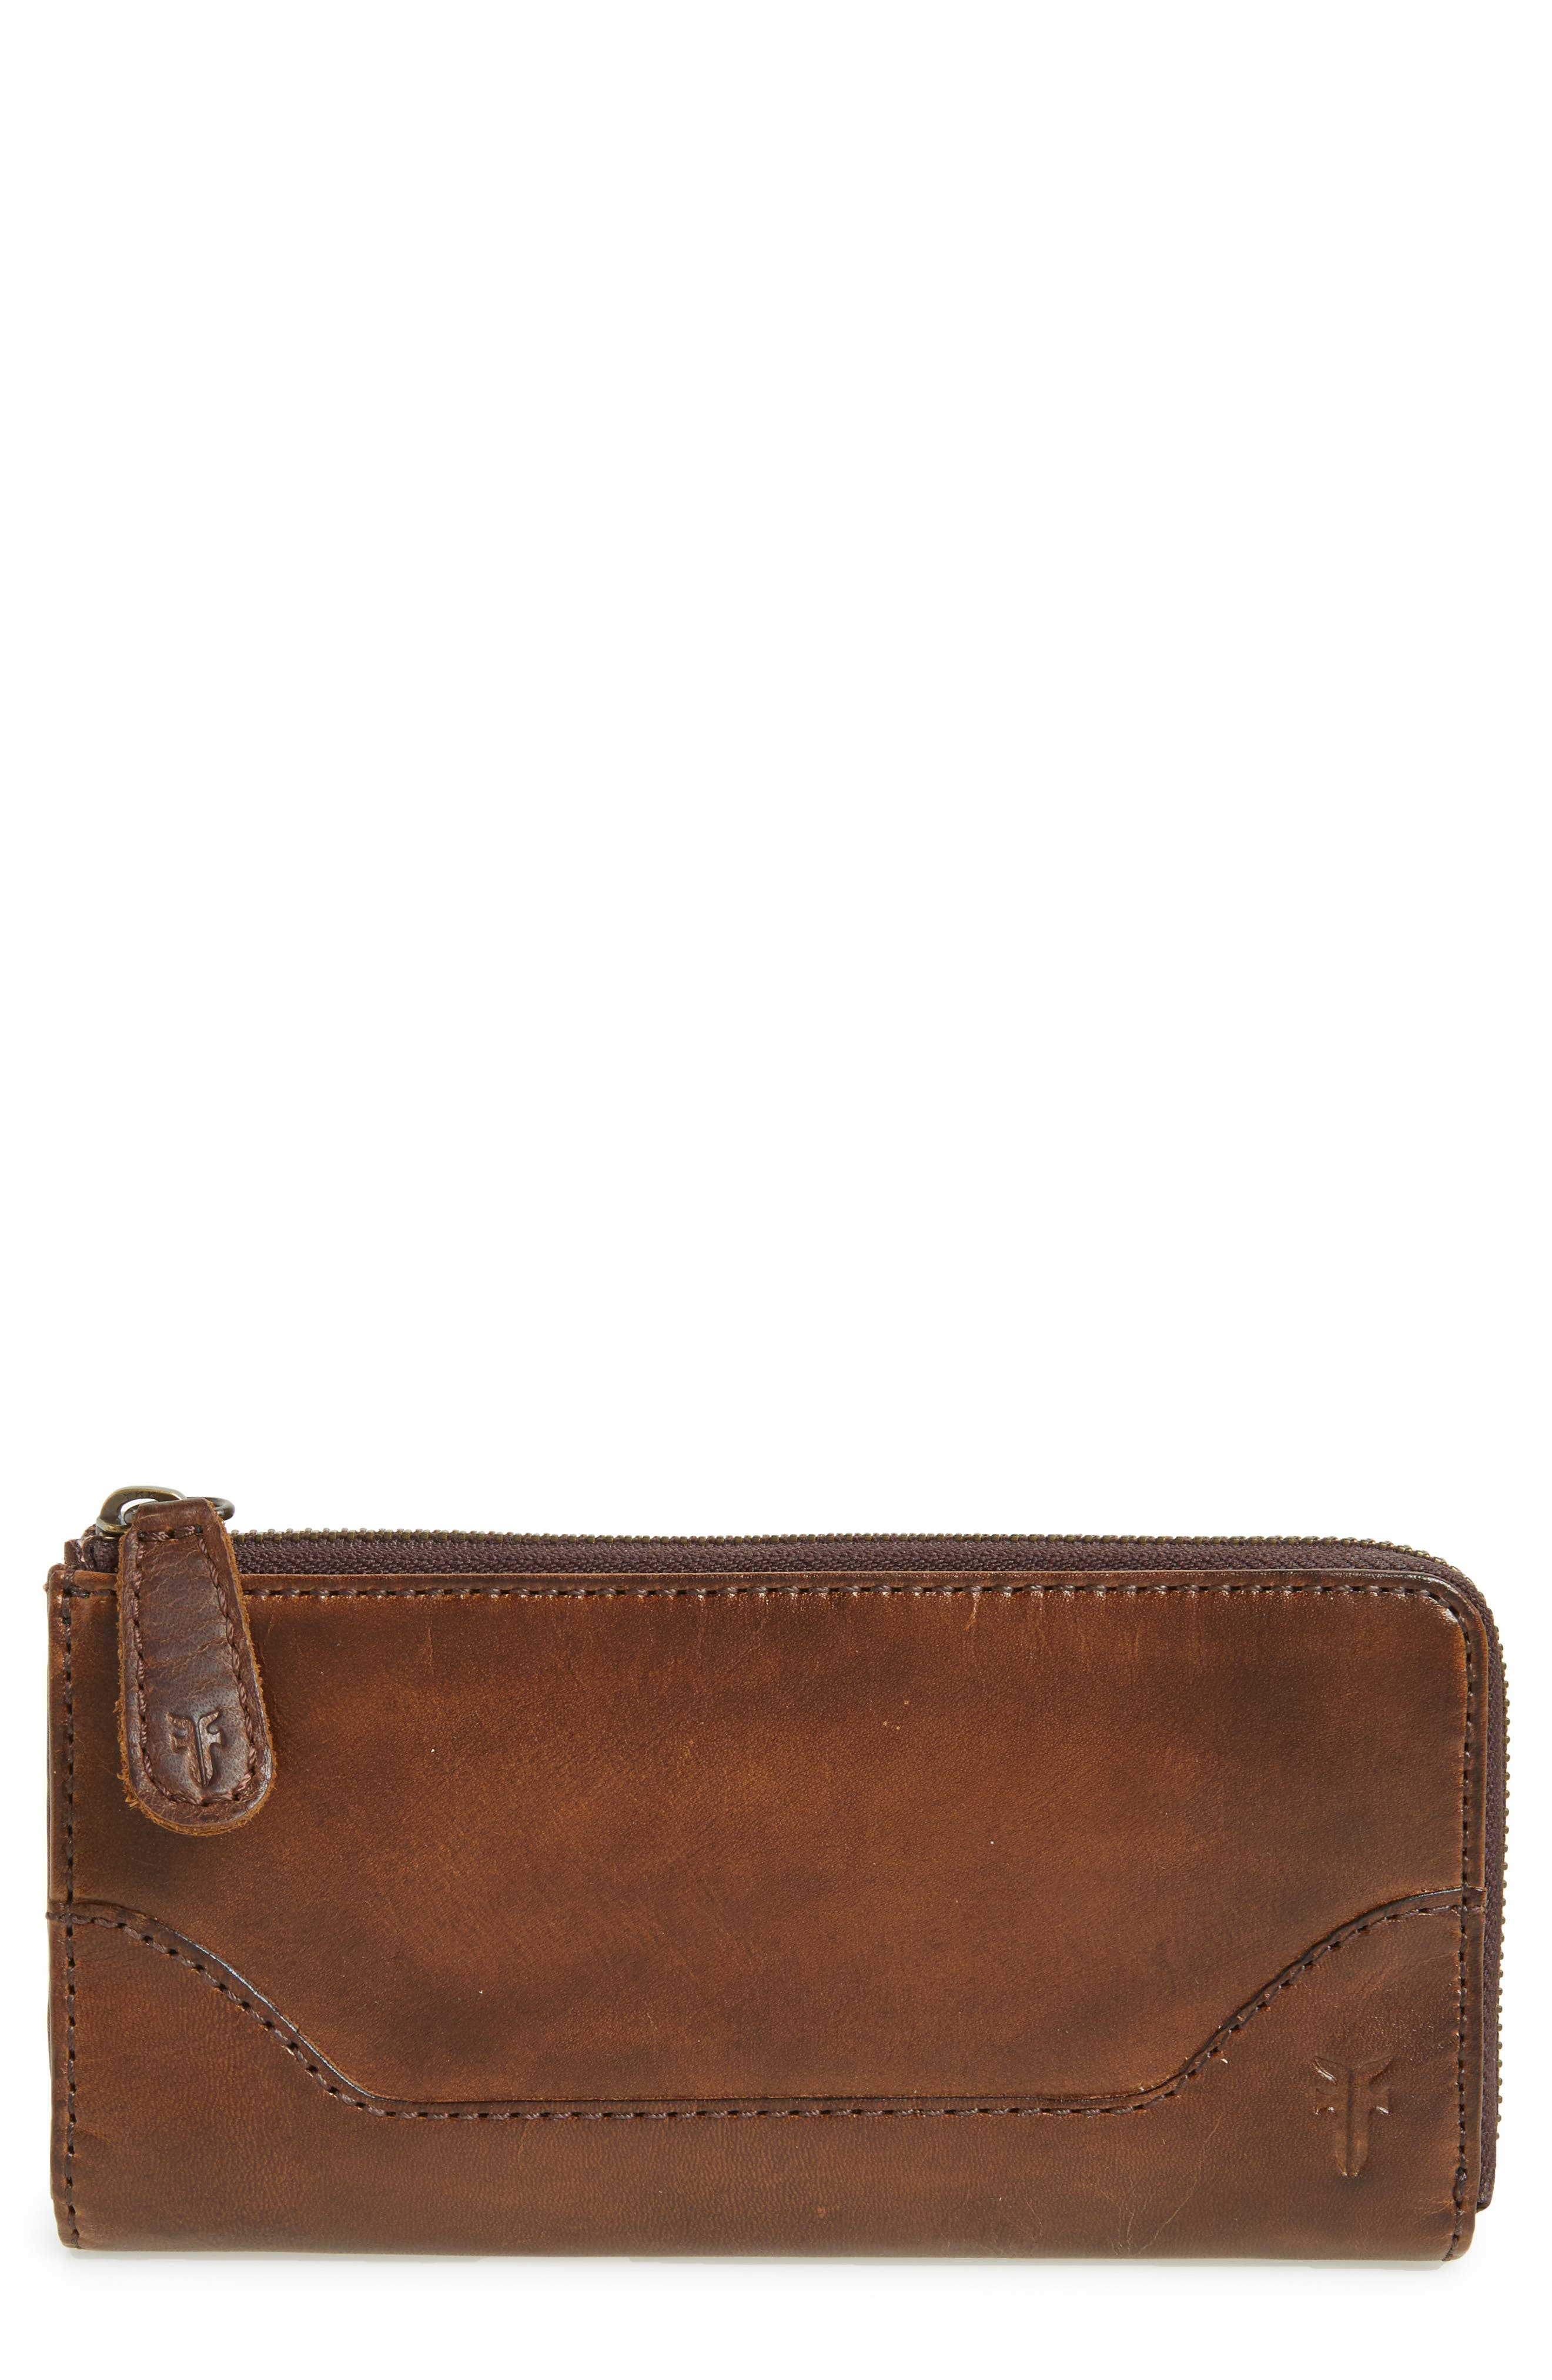 Melissa Leather Wallet,                             Main thumbnail 1, color,                             Dark Brown